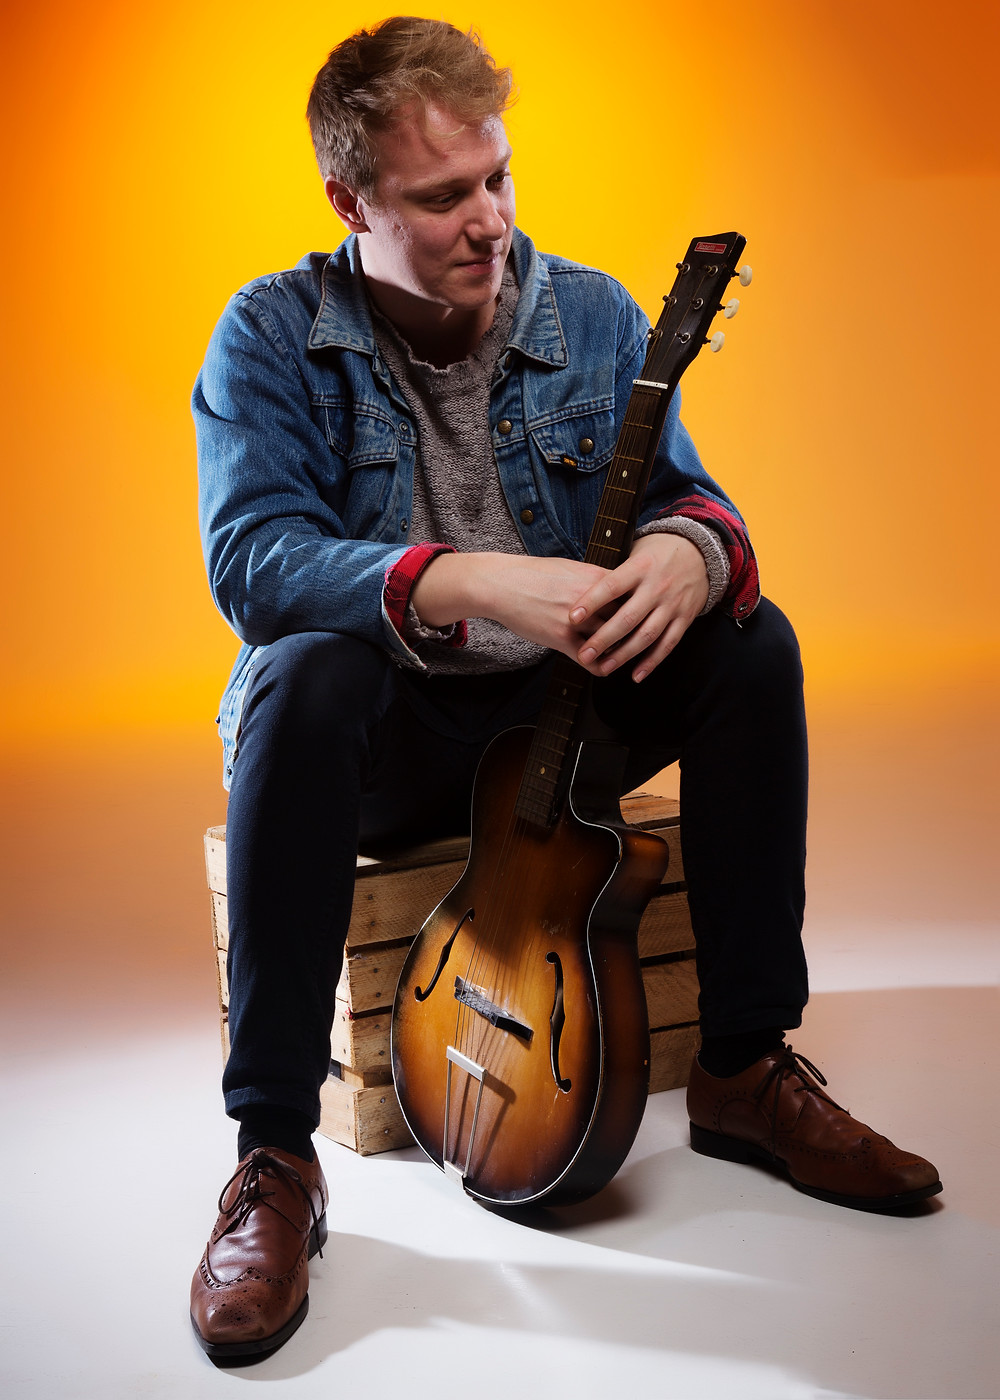 professional portrait of man with a guitar